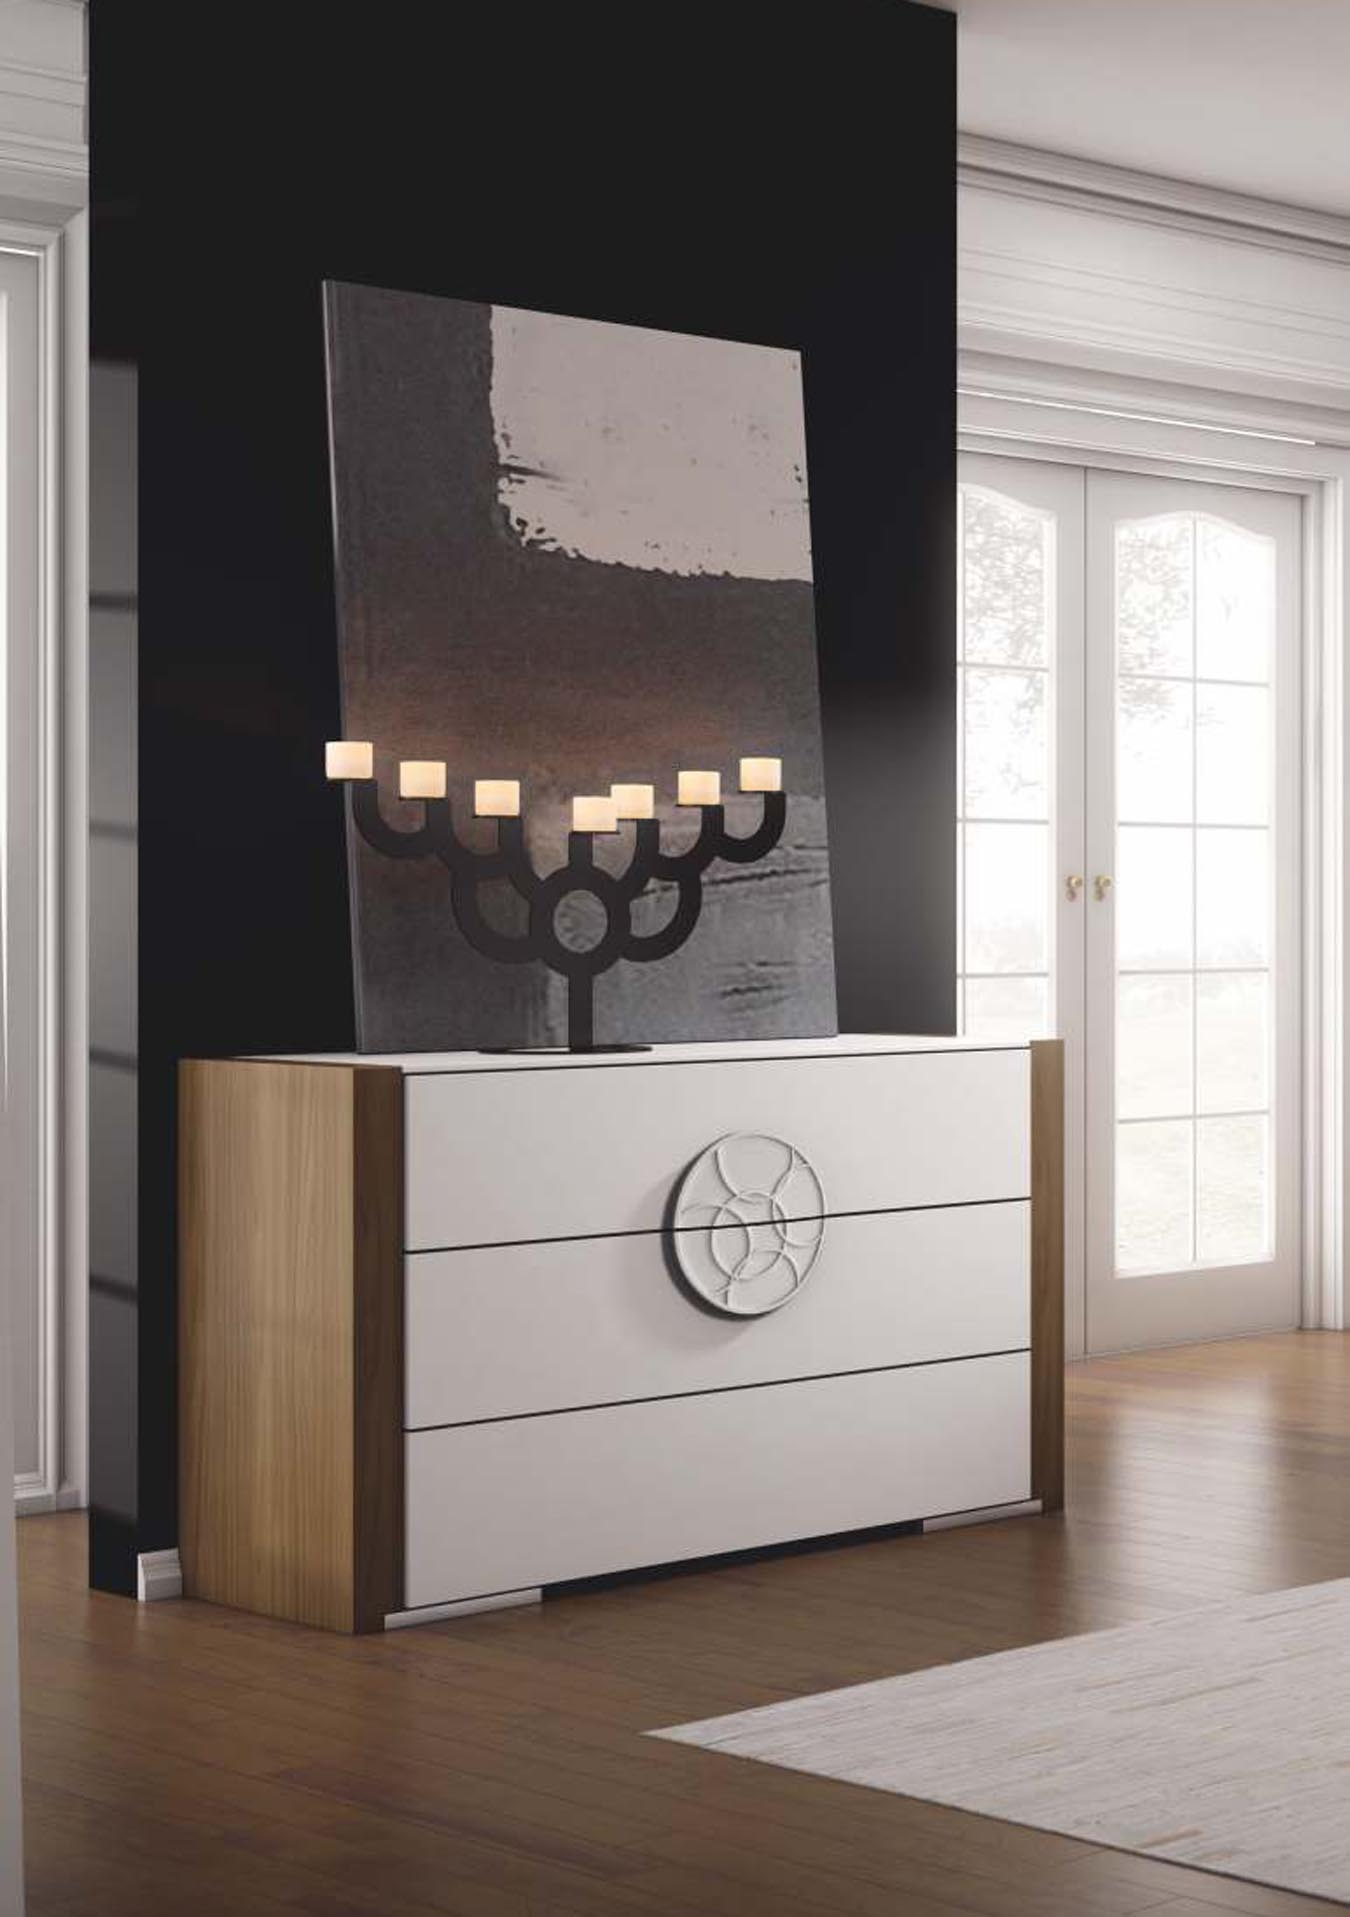 h lzerne kommode hamburg ihr online shop f r kommoden aus holz. Black Bedroom Furniture Sets. Home Design Ideas